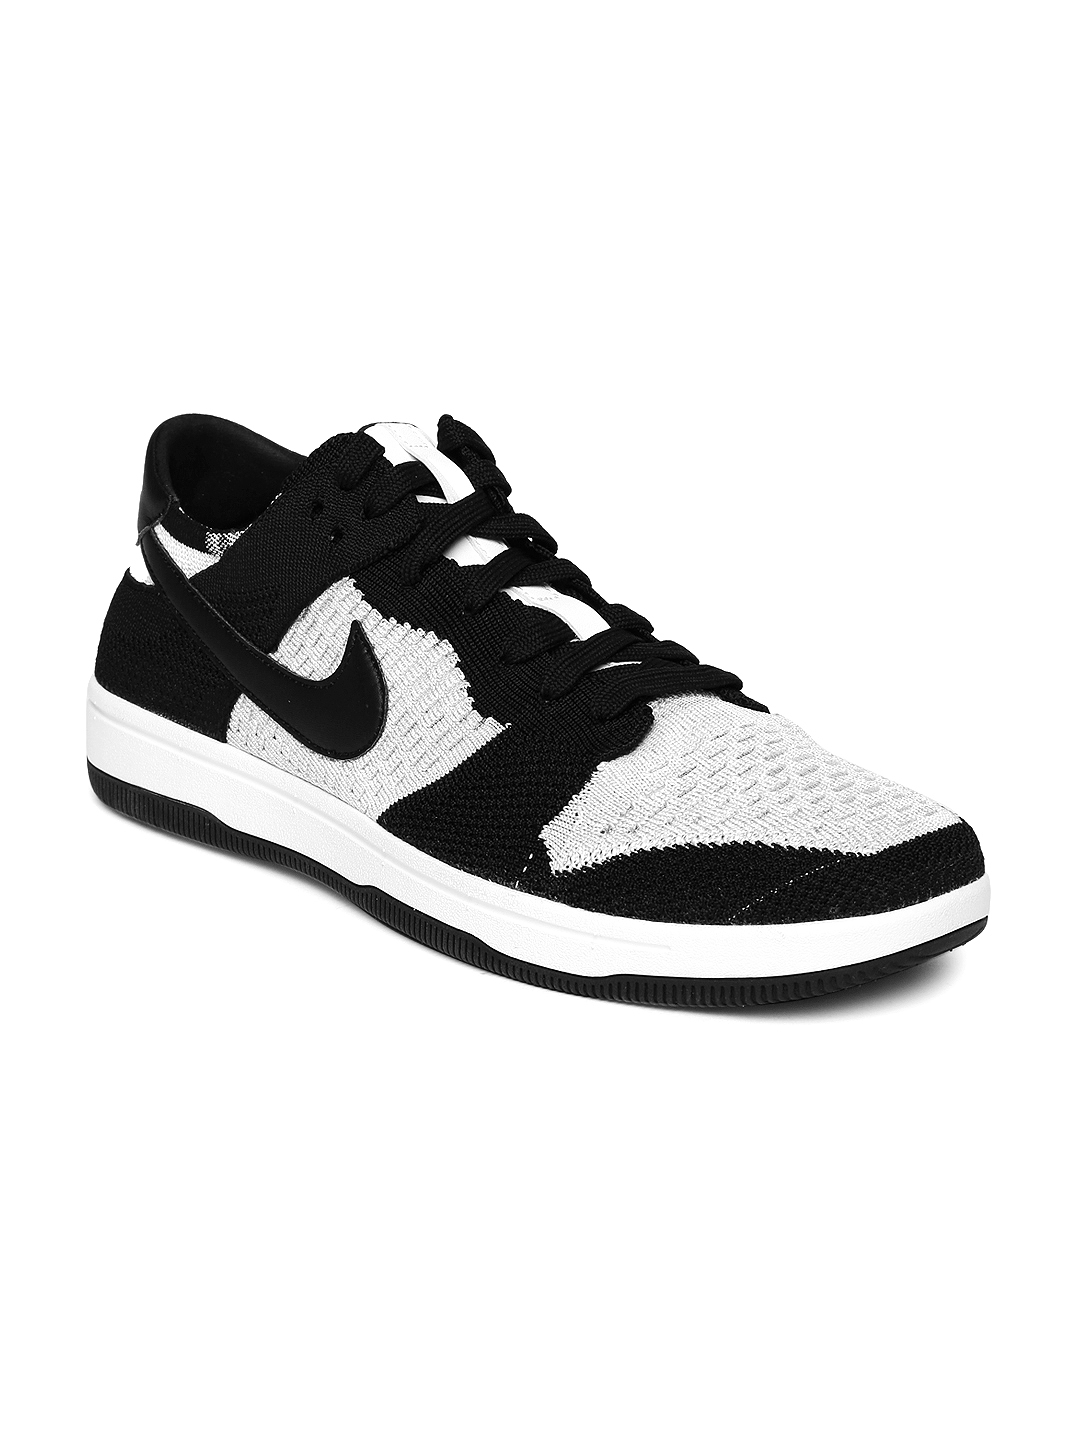 c4b1d4be238e Buy Nike Men Black   White DUNK FLYKNIT Sneakers - Casual Shoes for ...